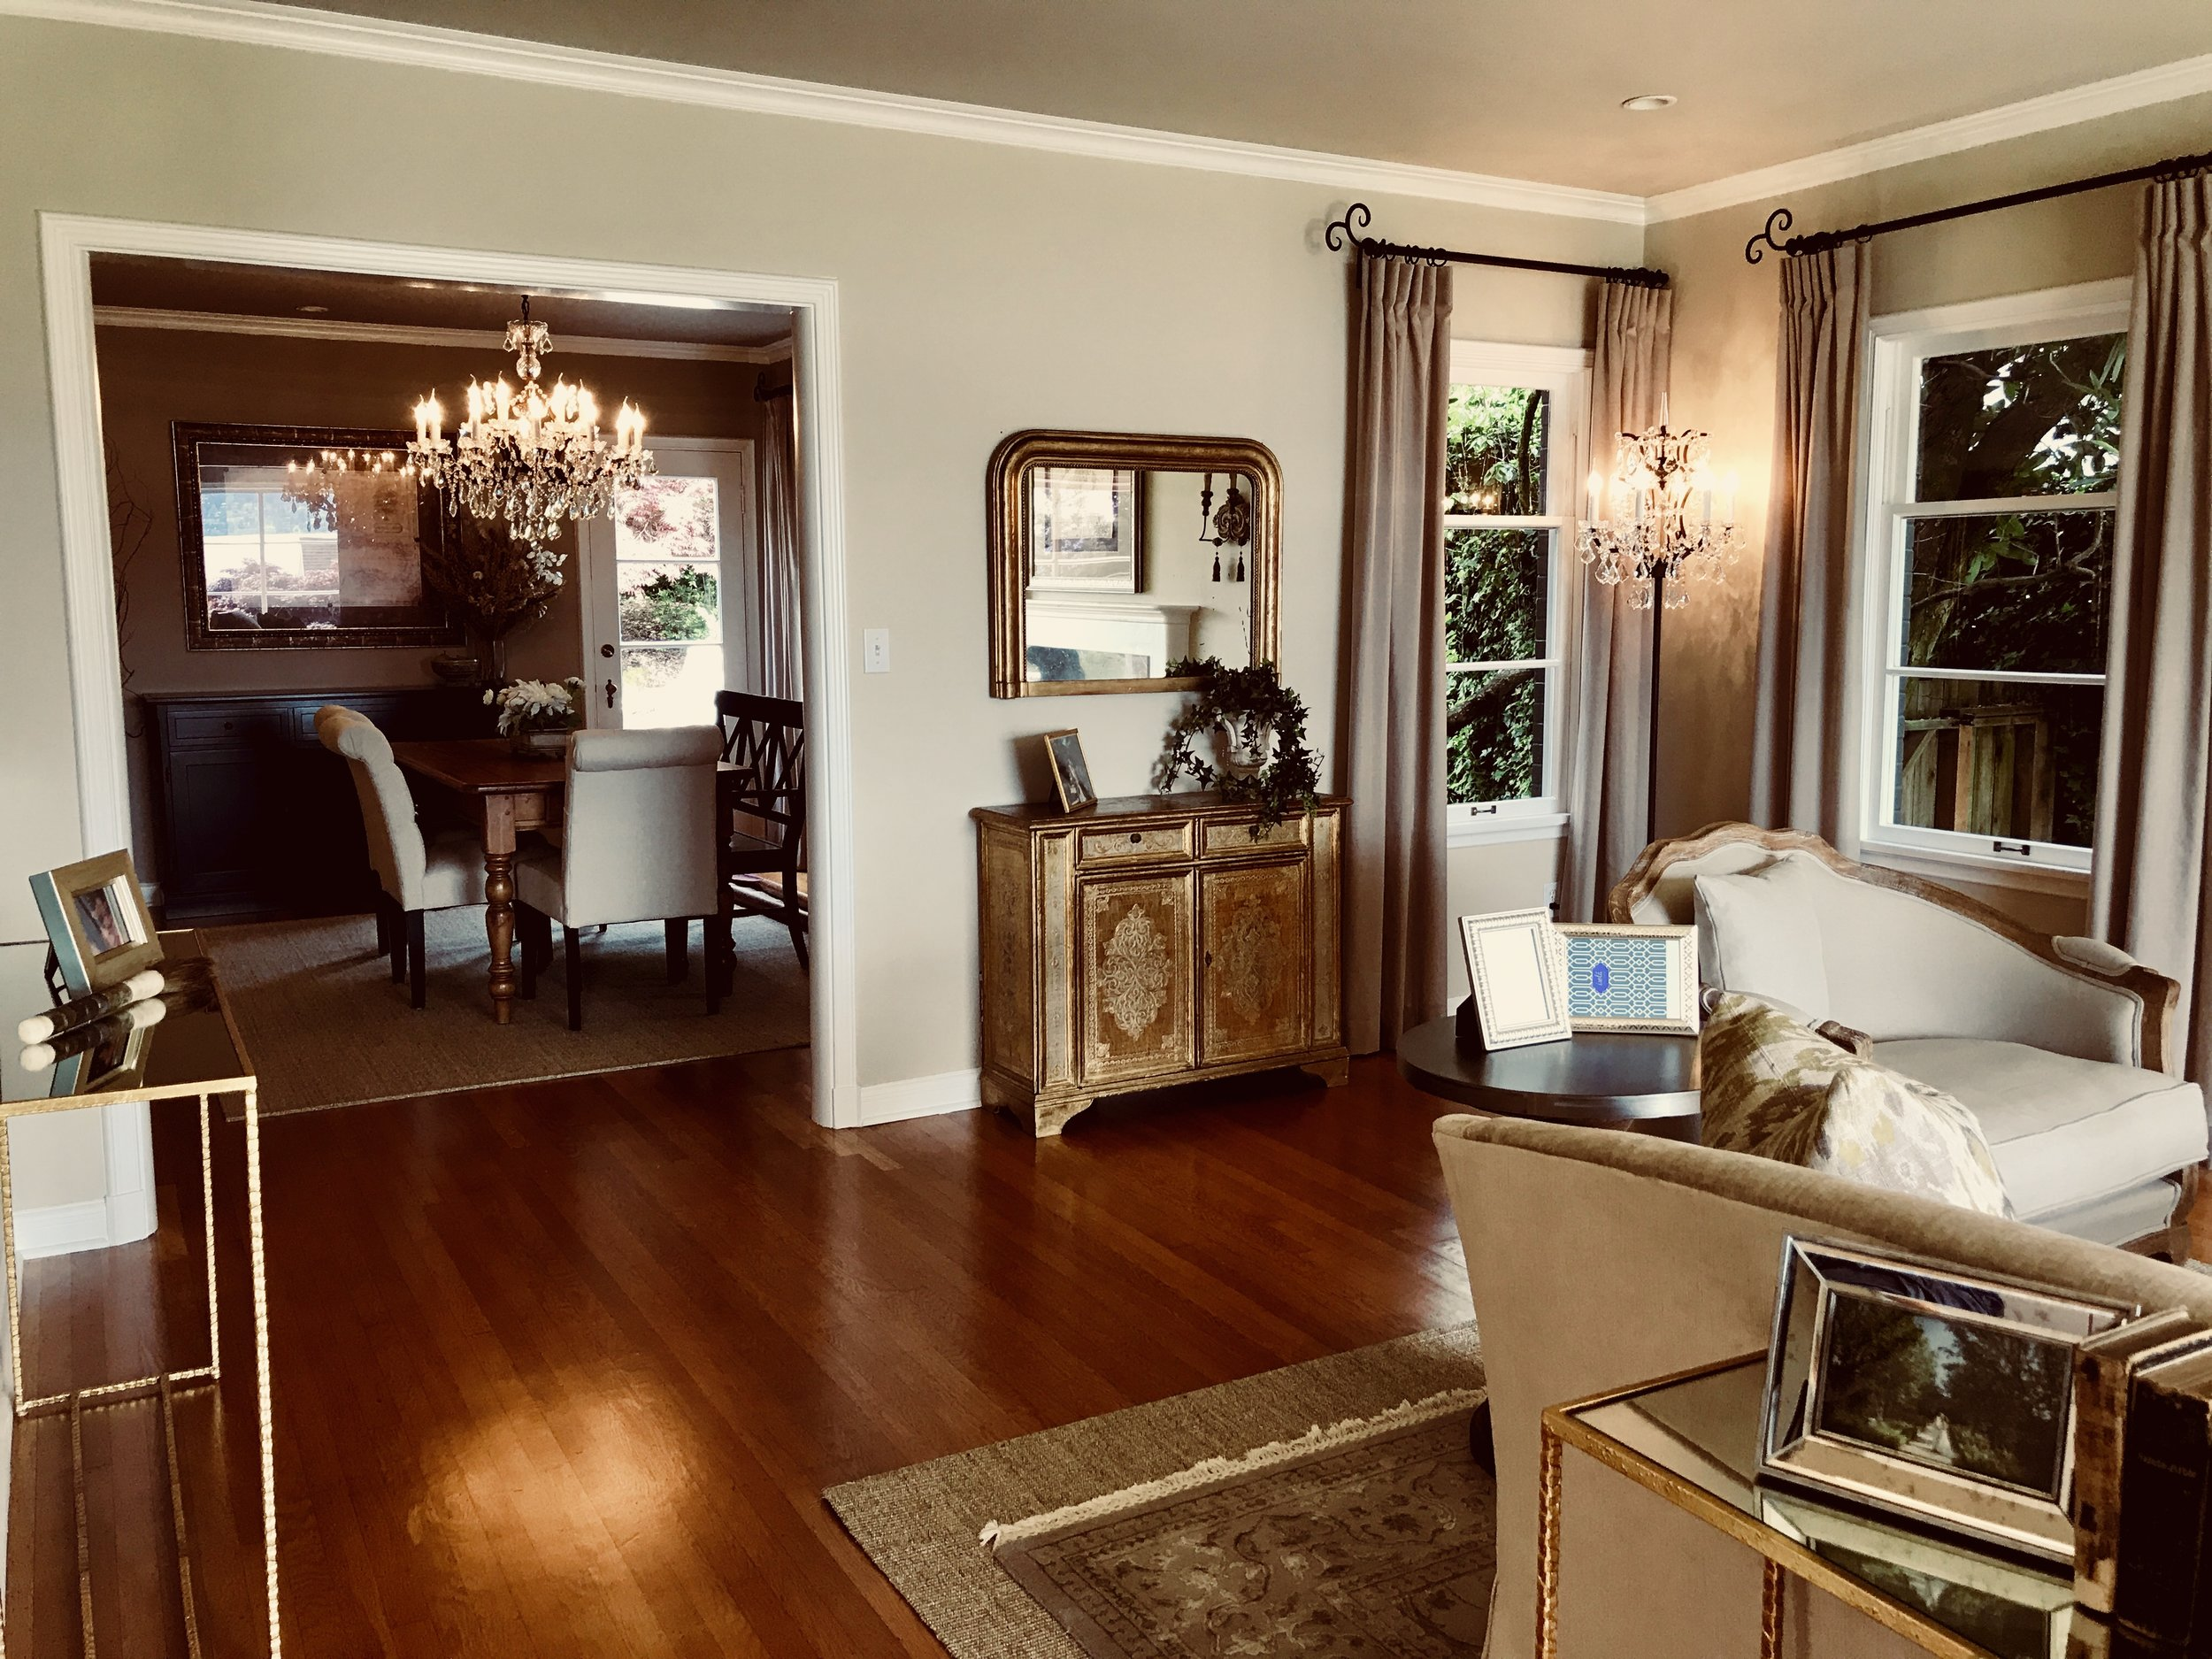 A painted Italian cabinet and Louis Philippe mirror add European charm